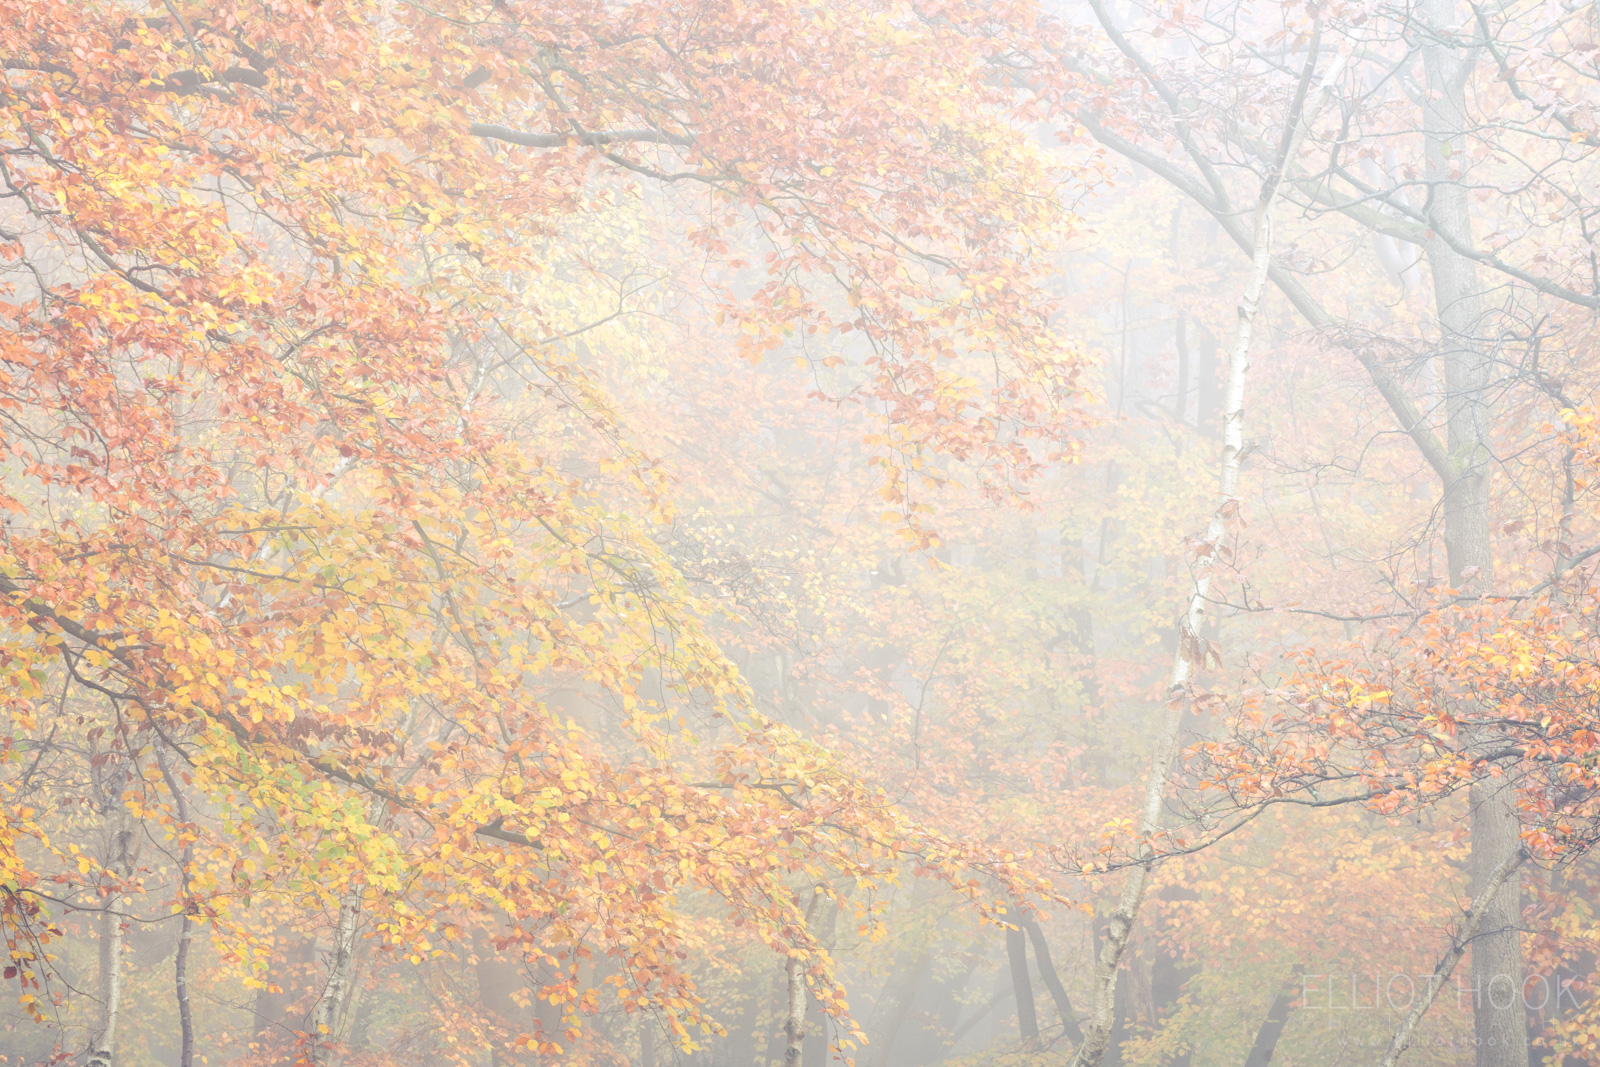 Photograph giving a closer crop of tree canopy showing the pastel colours of autumn in the leaves